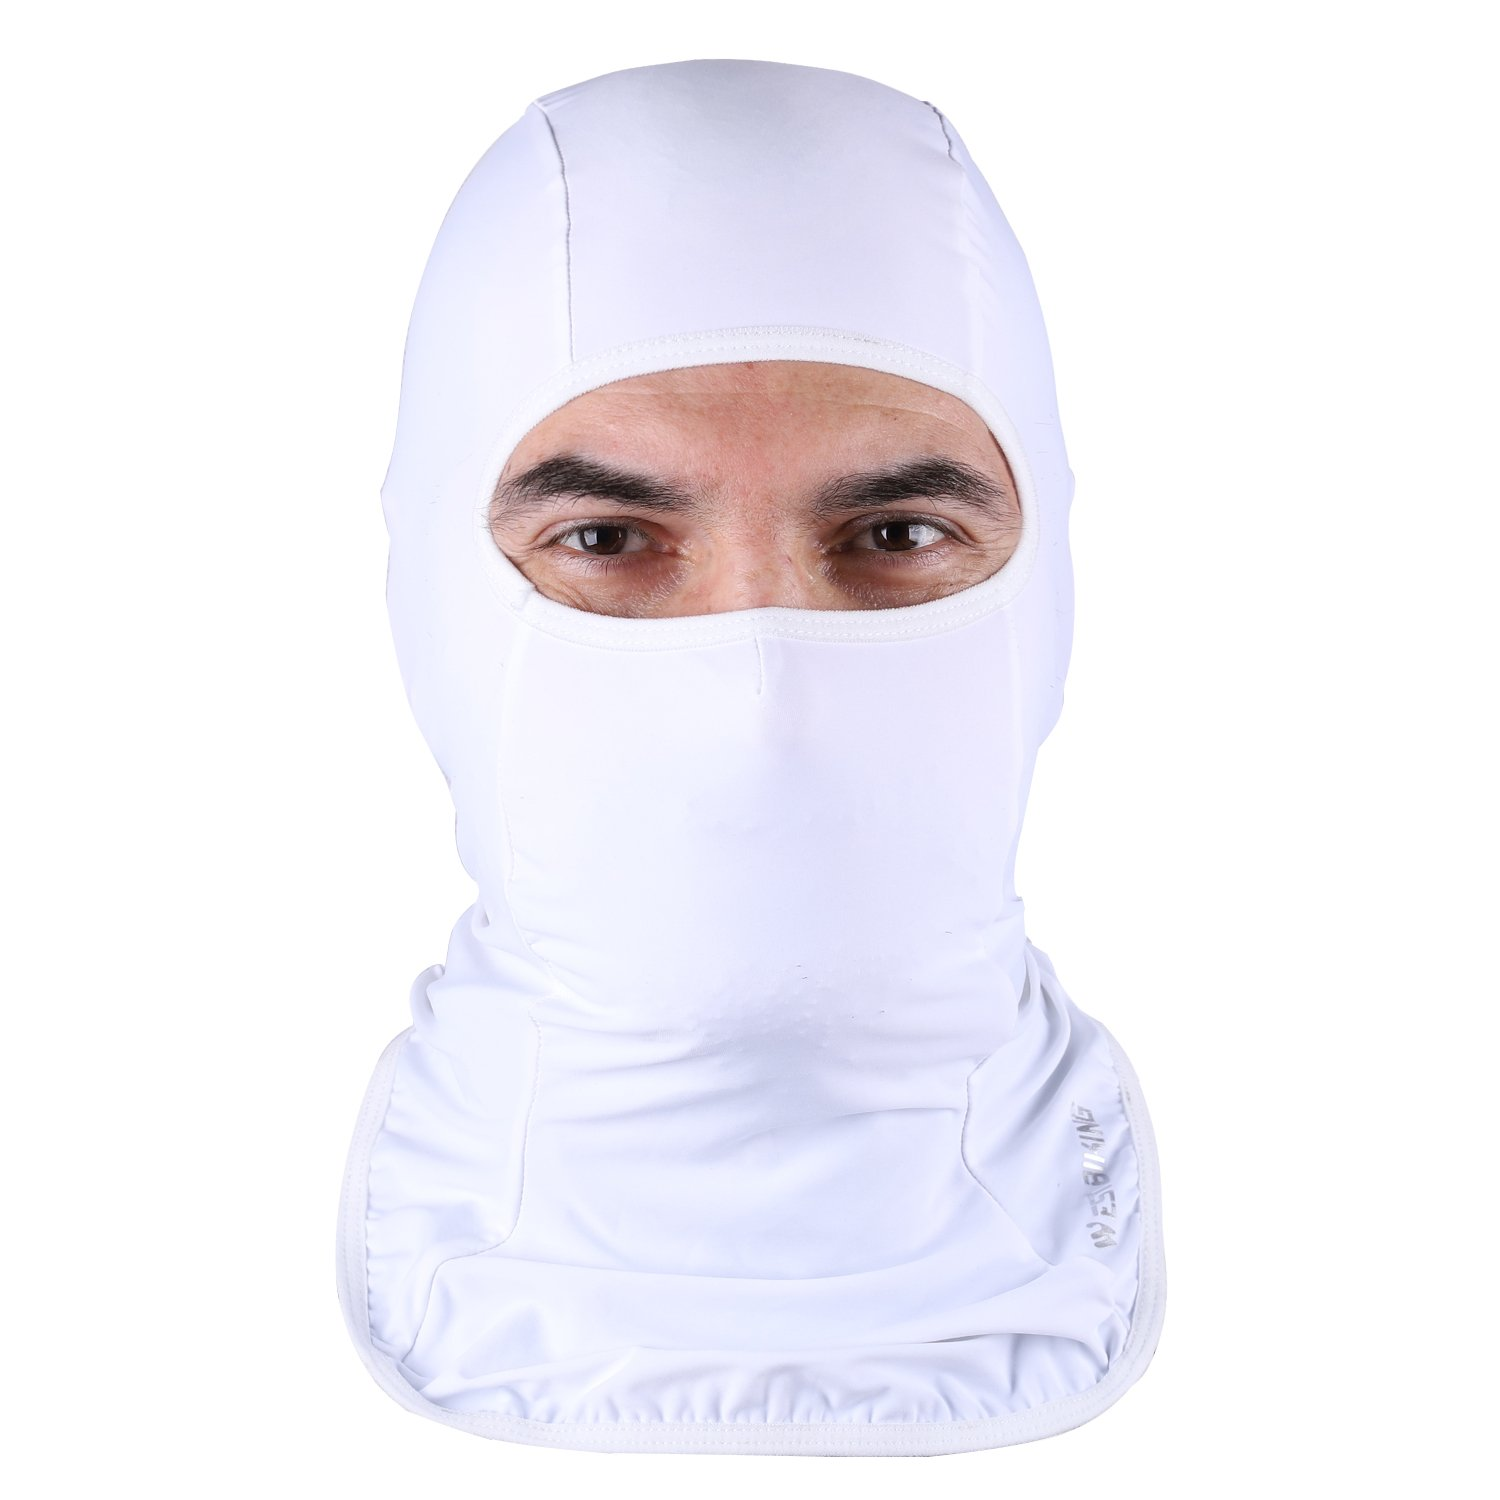 ICOCOPRO Lycra Fabrics Balaclava - Protects from Wind, Sun, Dust Spring Summer Face Mask Helmet Liner Breathable, Sweat-Absorbent,Quick Dring Quick Dring-White 3AWJ-YP0201176-1-White